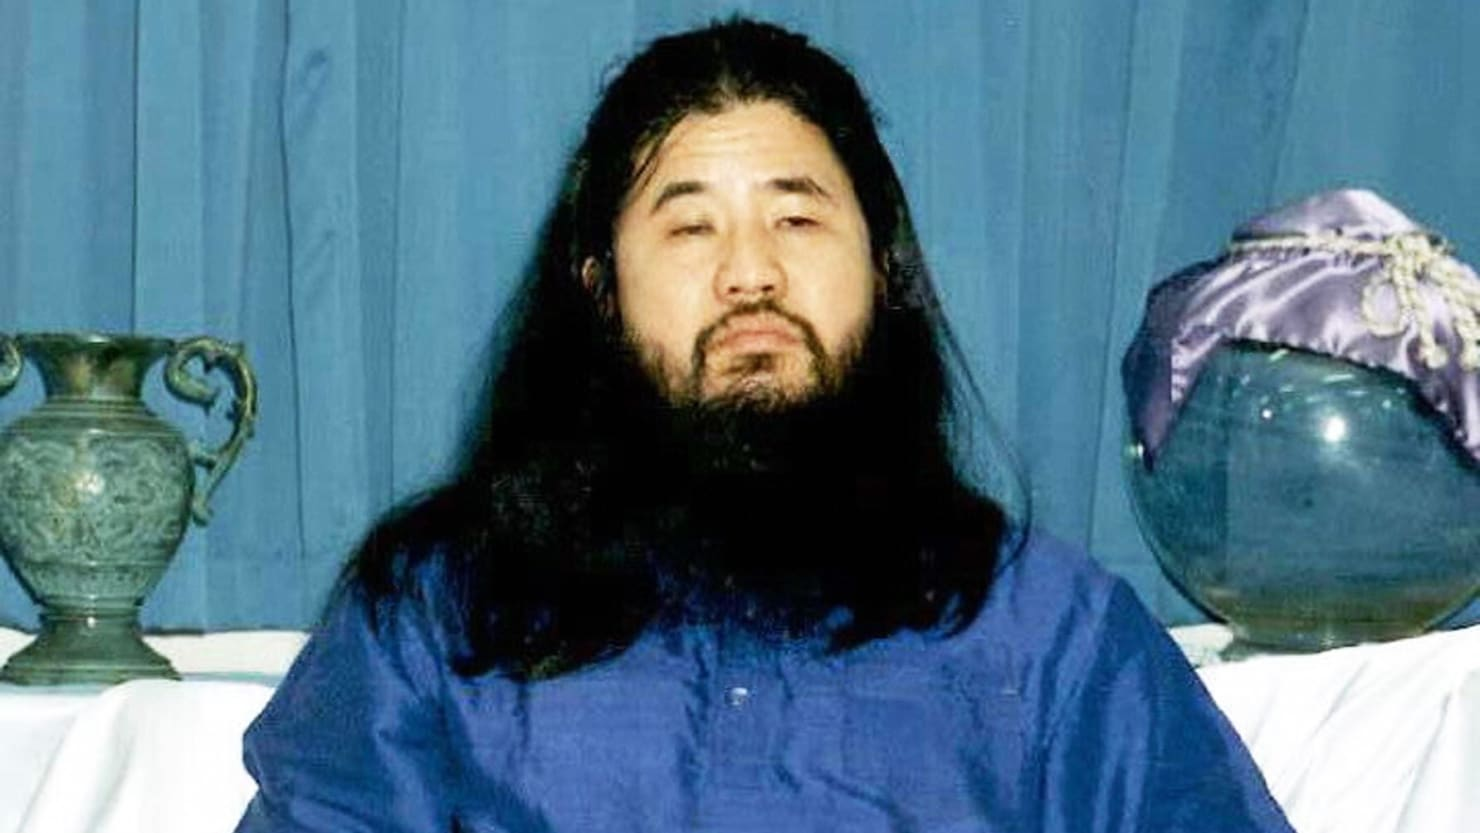 Aum Shinrikyo: The Japanese Killer Cult That Wanted to Rule the World